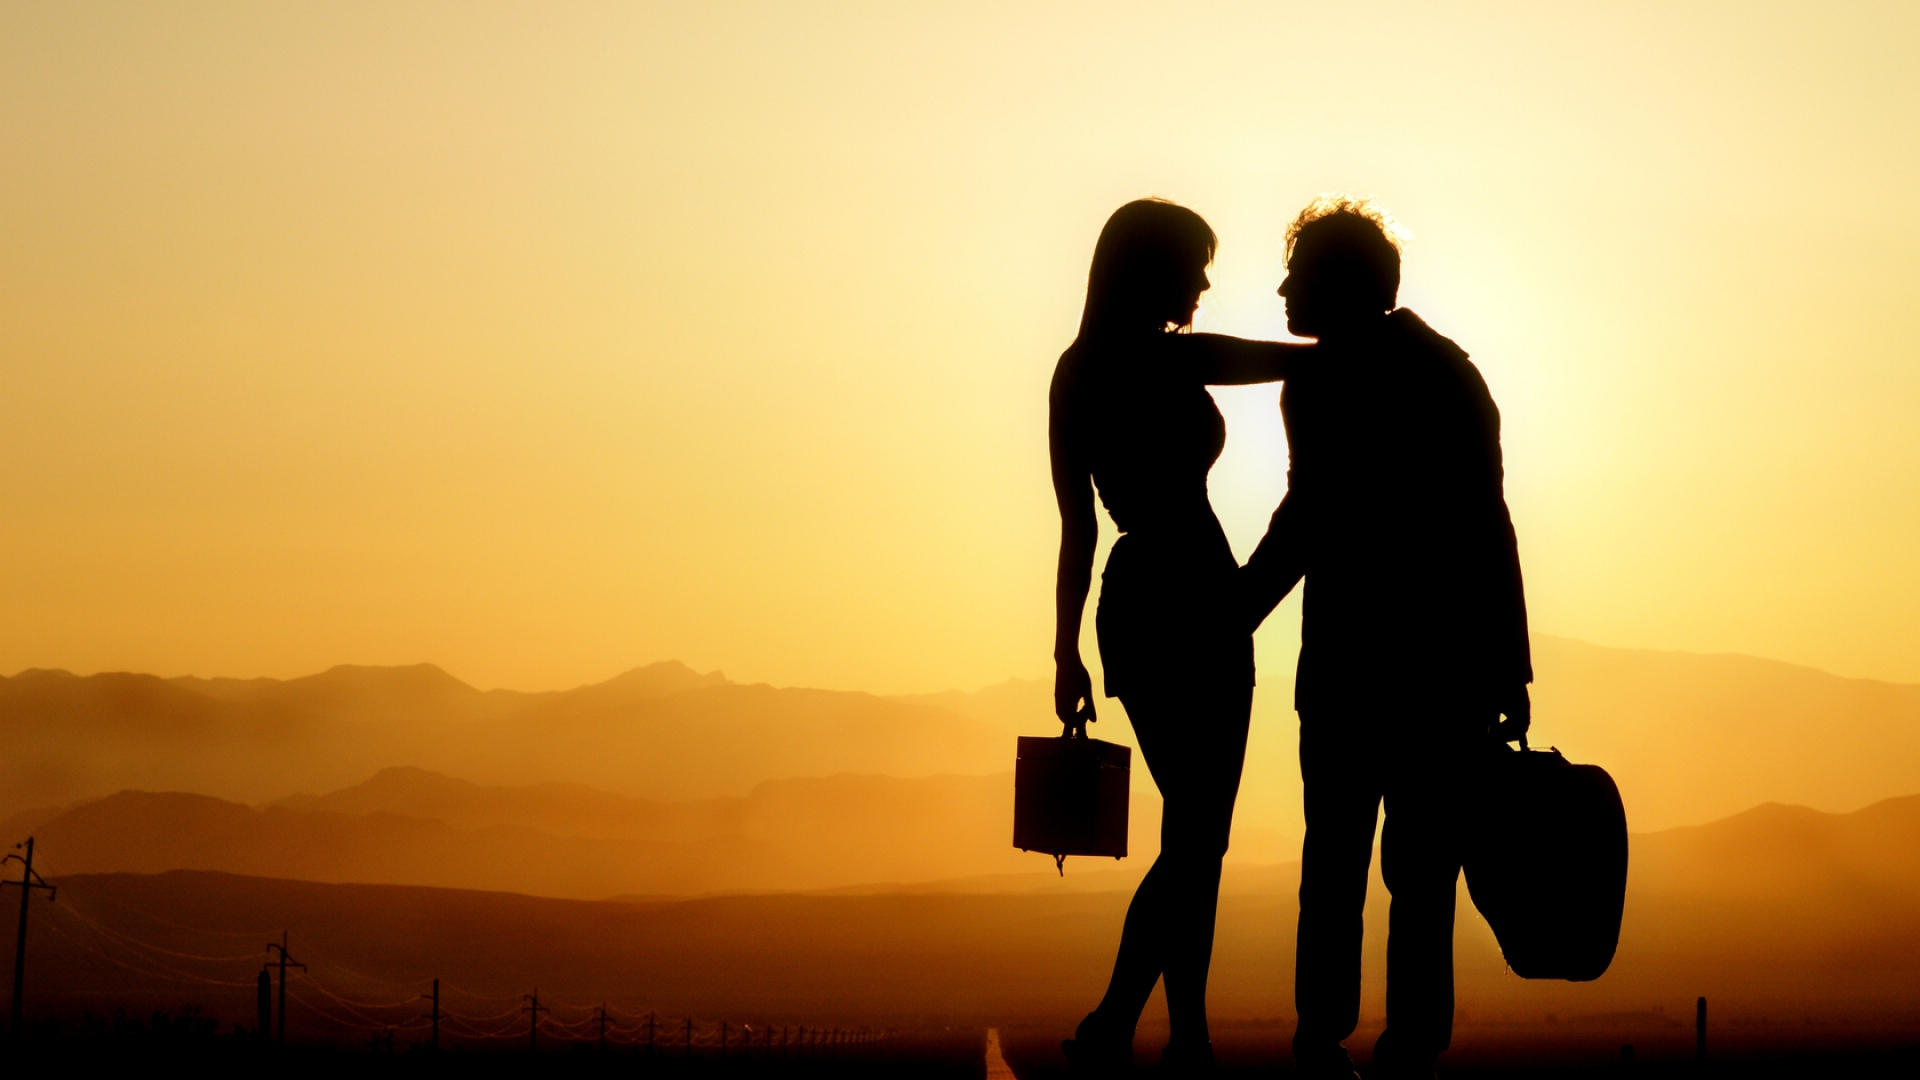 Download Wallpaper 1920x1080 Couple Silhouette Shadow Love Full Hd 1080p Hd Background